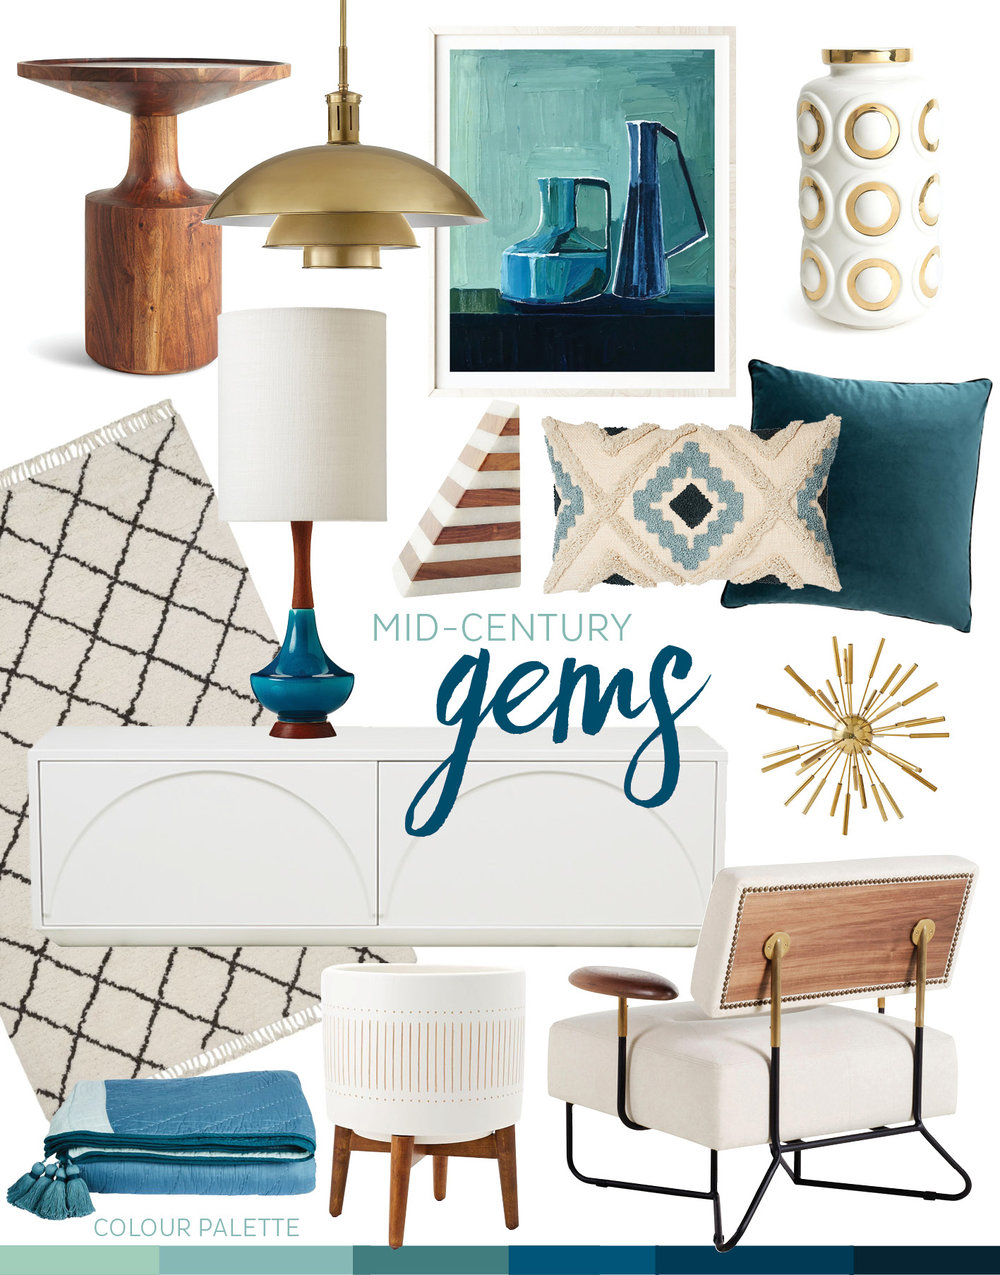 adore_home_blog_mid-century_gems_blue_retro_gold_glam_palm_springs_glamour_modern.jpg